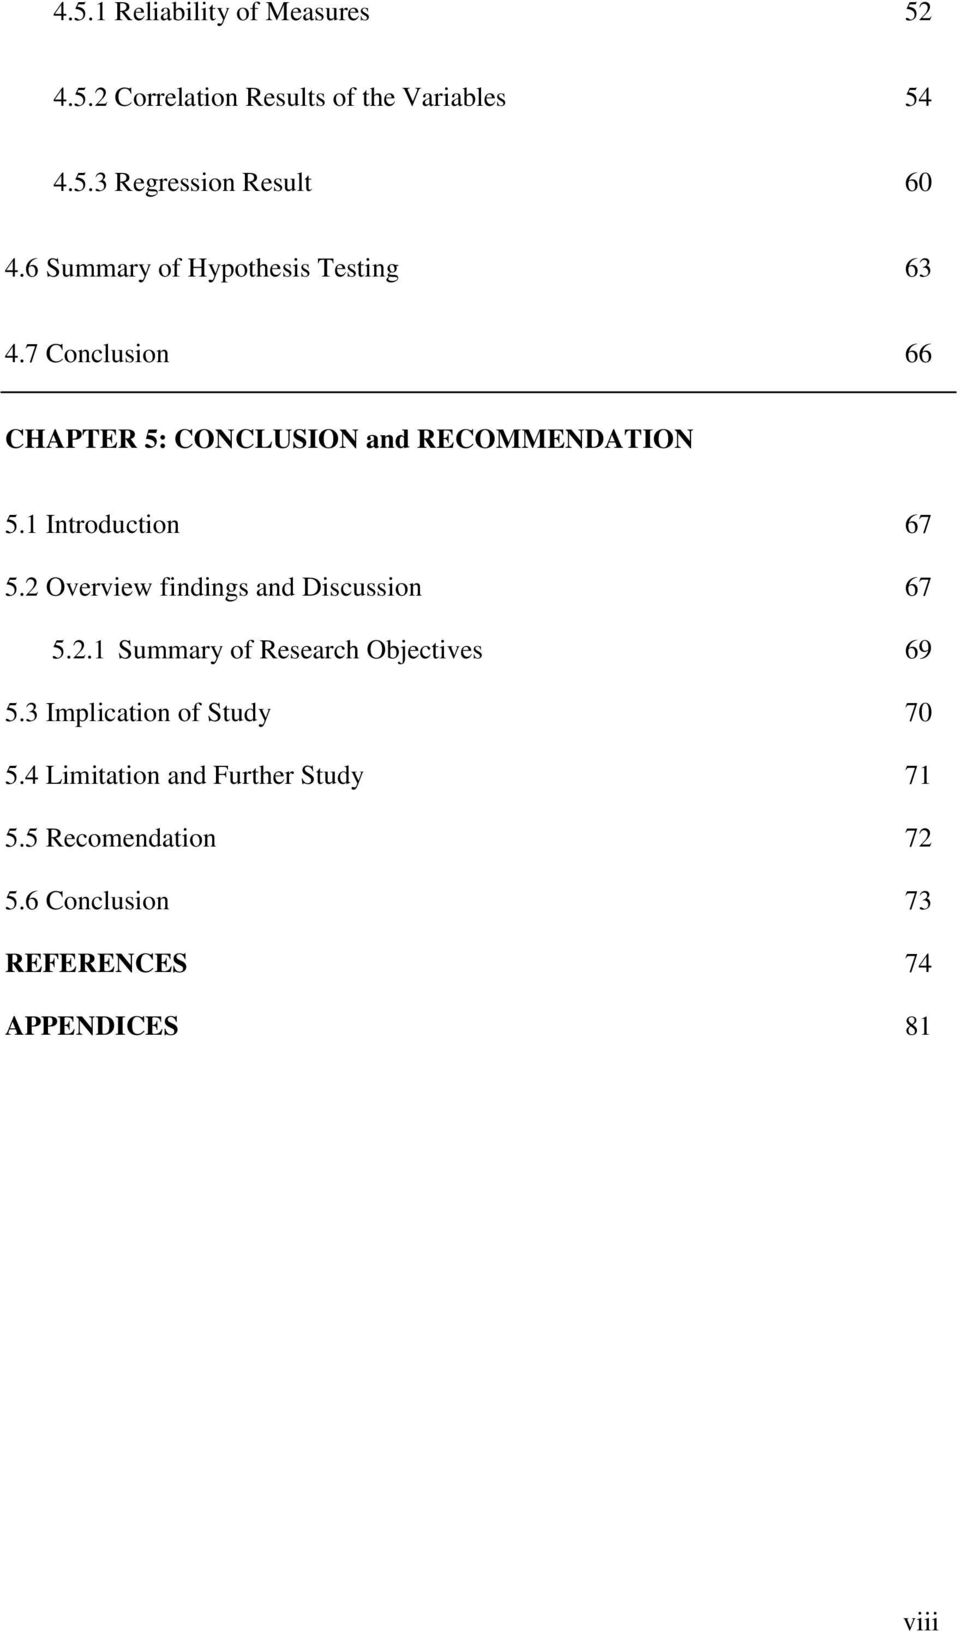 1 Introduction 67 5.2 Overview findings and Discussion 67 5.2.1 Summary of Research Objectives 69 5.